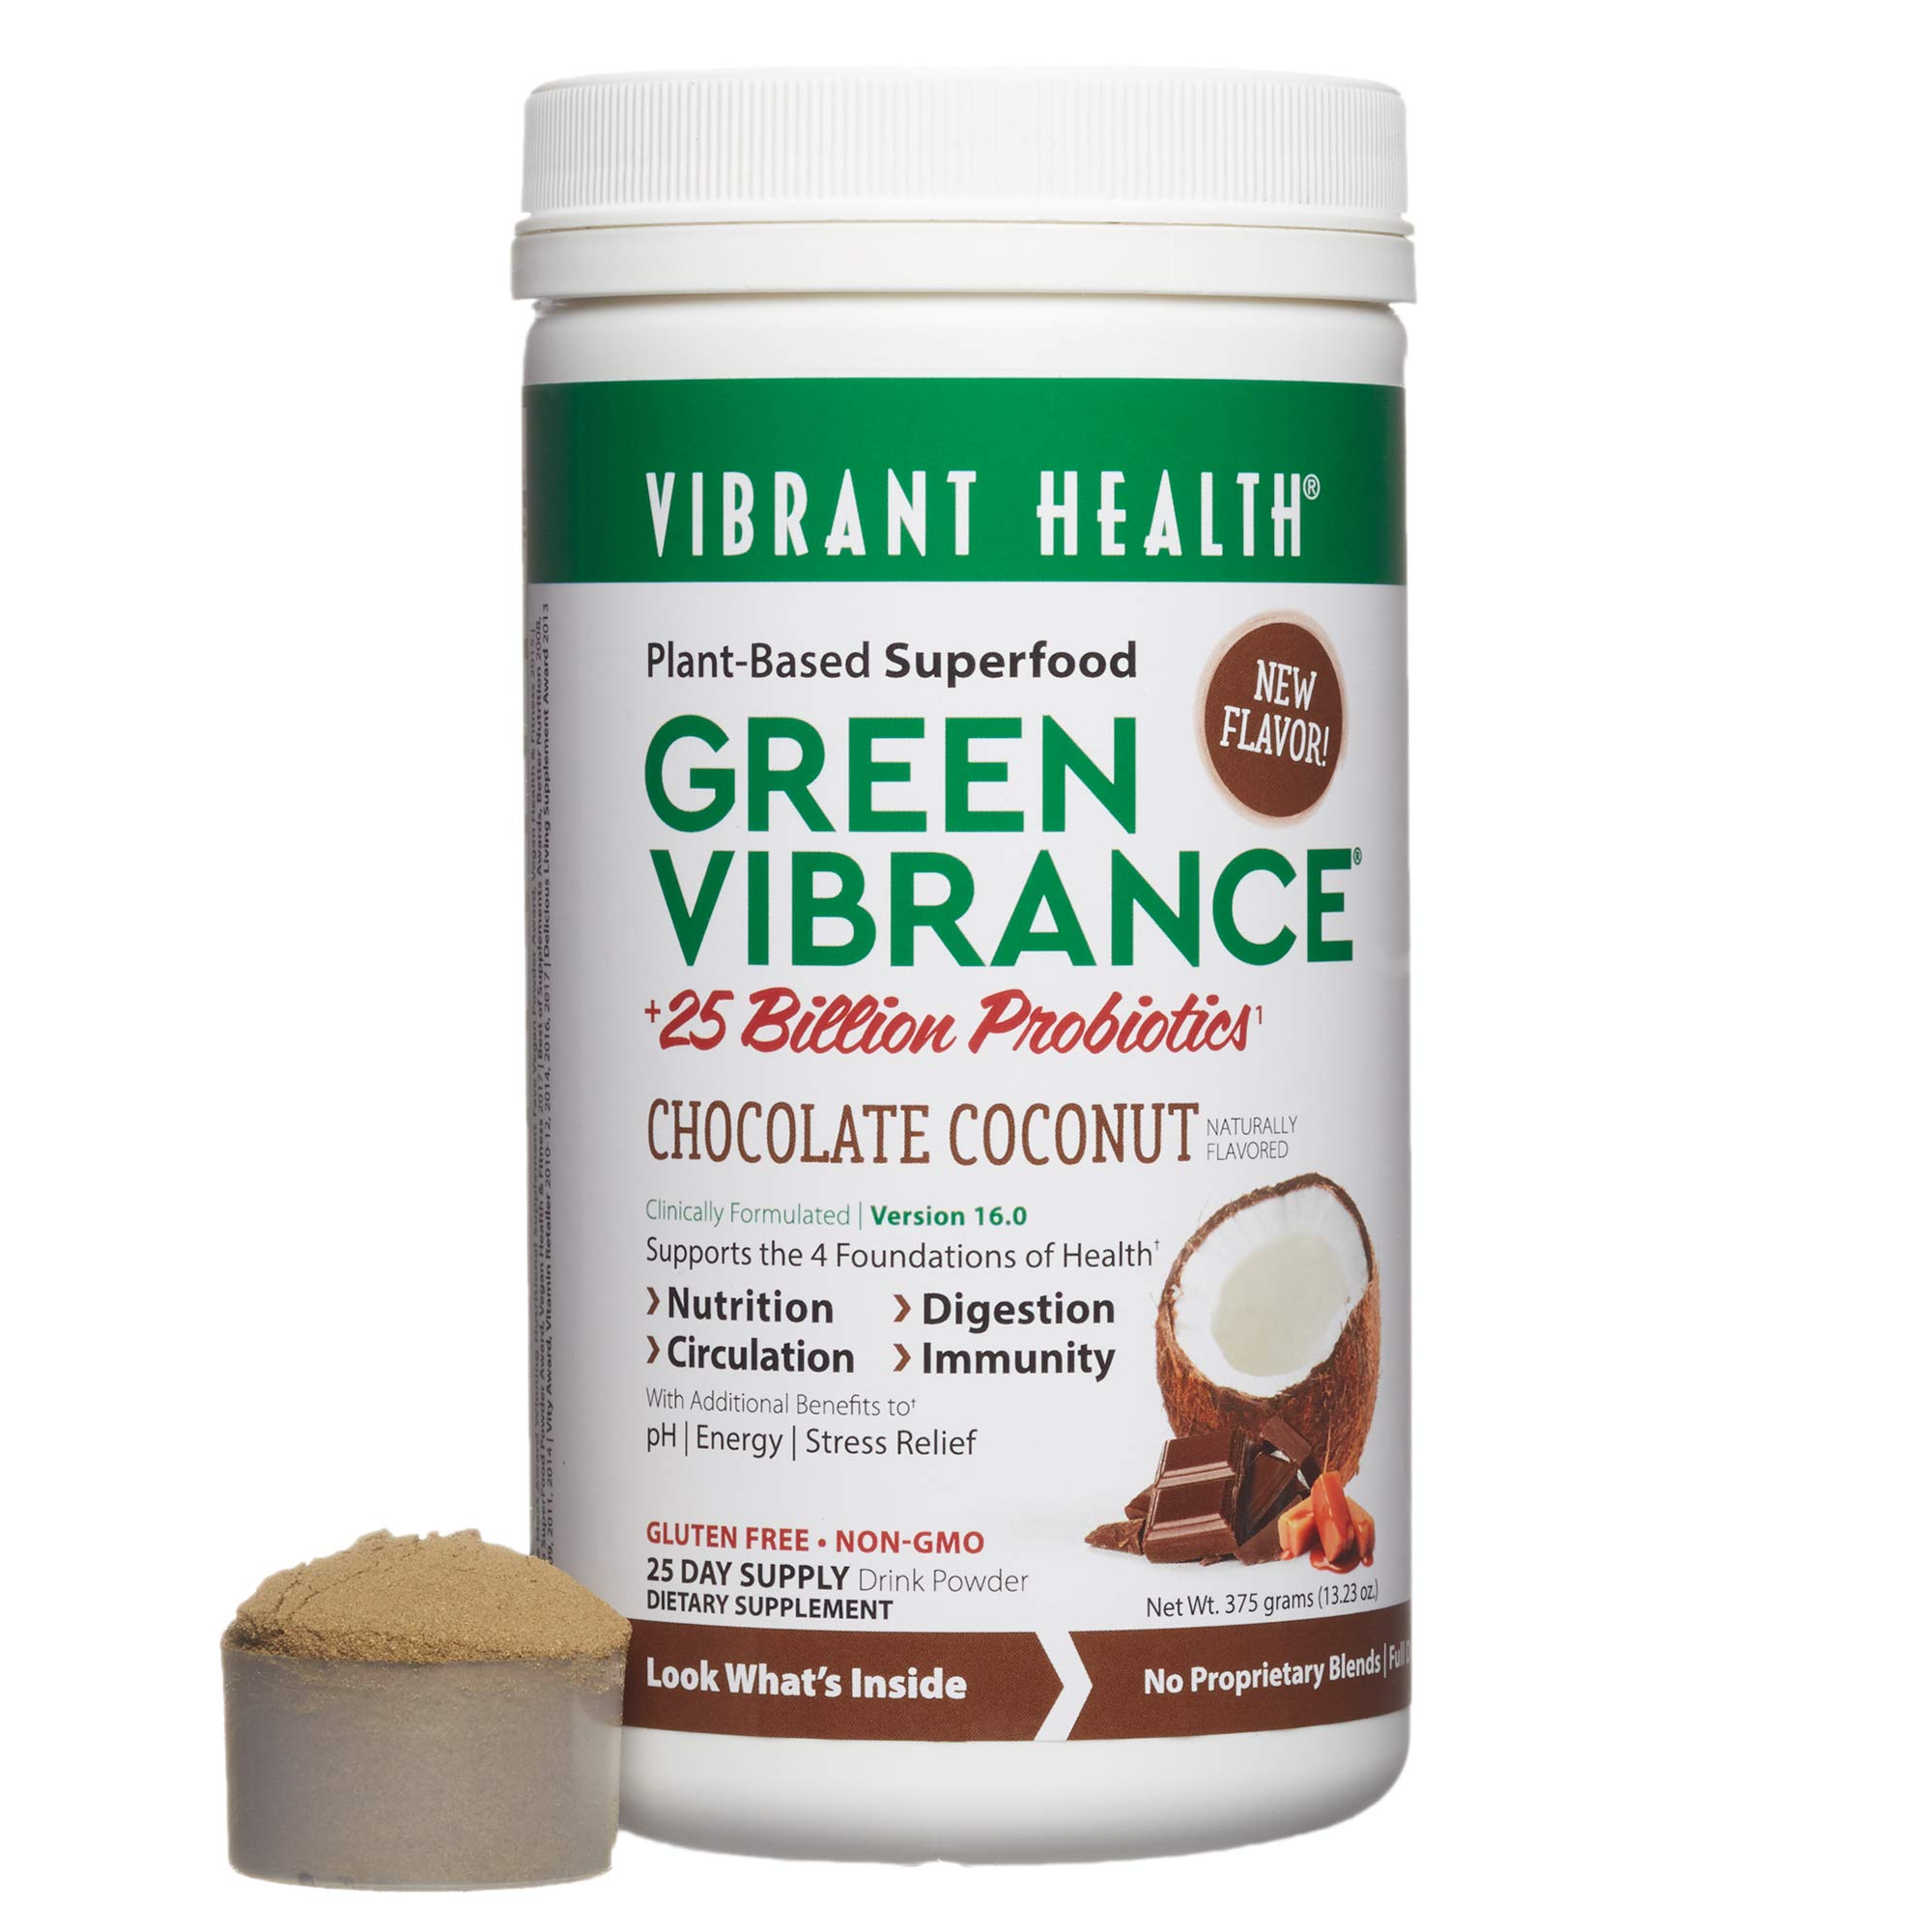 Vibrant Health - Green Vibrance, Plant-Based Superfood to Support Immunity, Digestion, and Energy, 25 Billion Probiotics, Gluten Free, Non-GMO, Vegetarian, Chocolate Coconut, 25 Servings by Vibrant Health